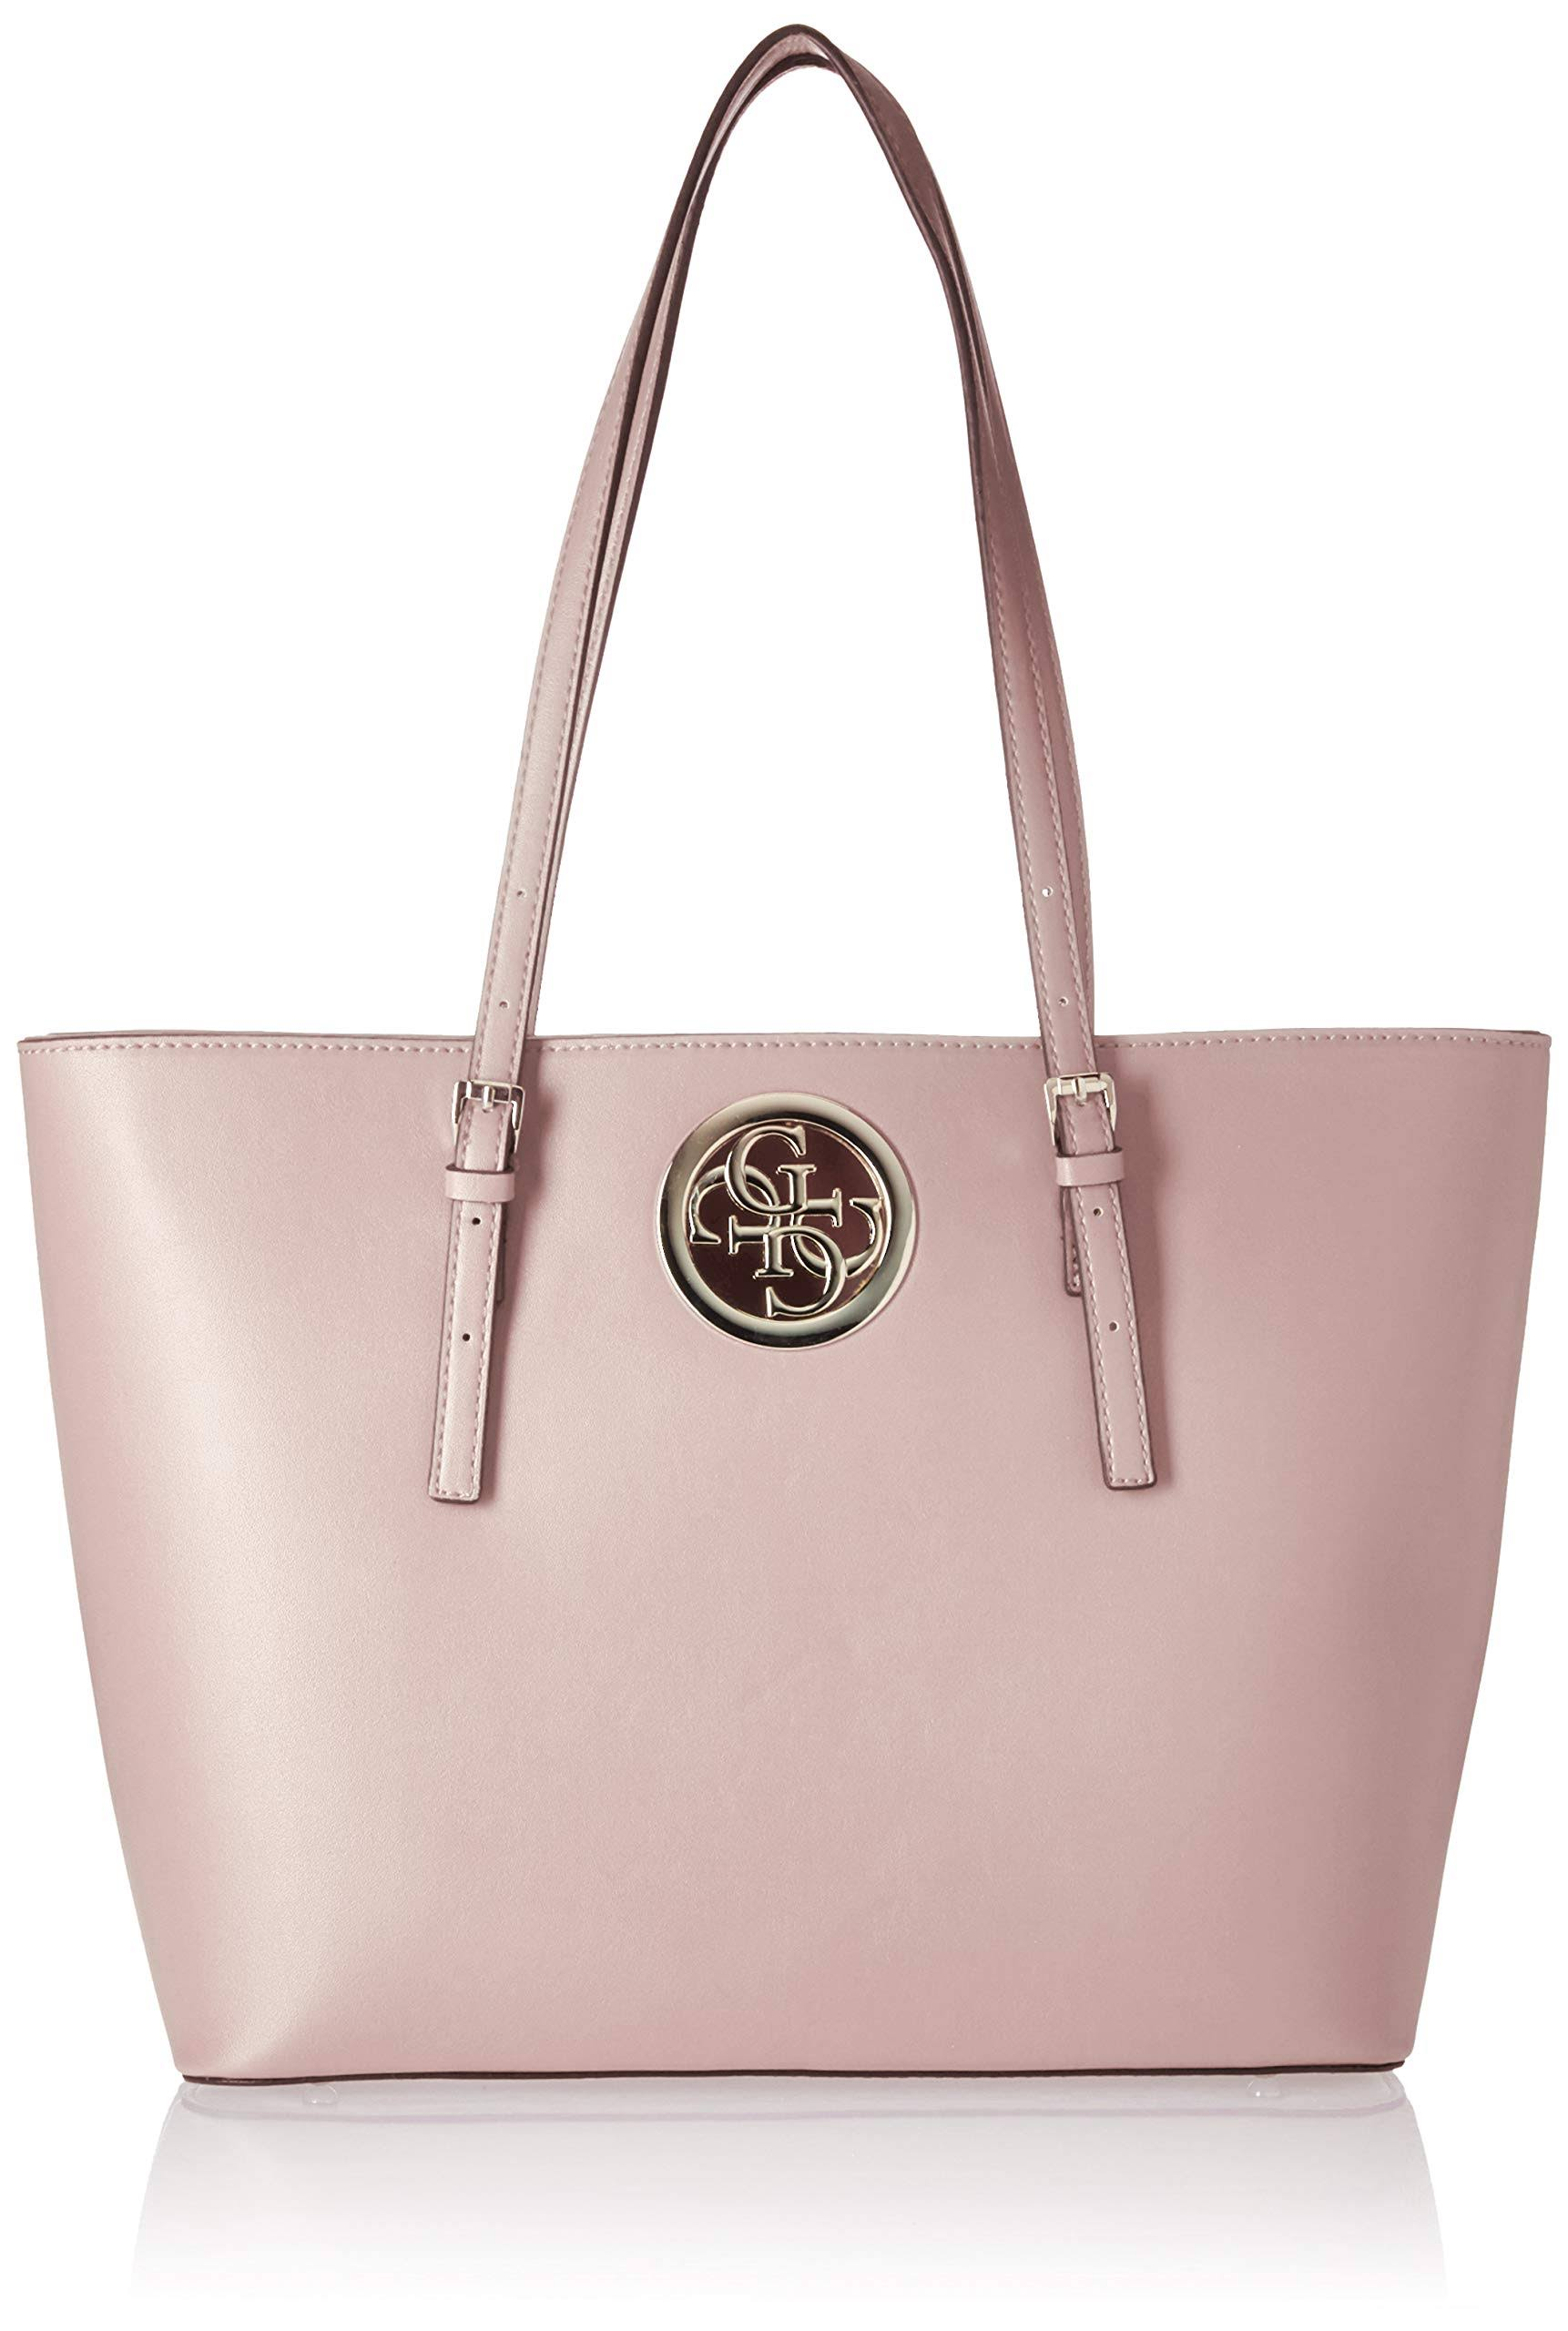 Guess Tote Cameooro Rodeo Tote Guess Rodeo Guess Cameooro Rodeo UpSVzM